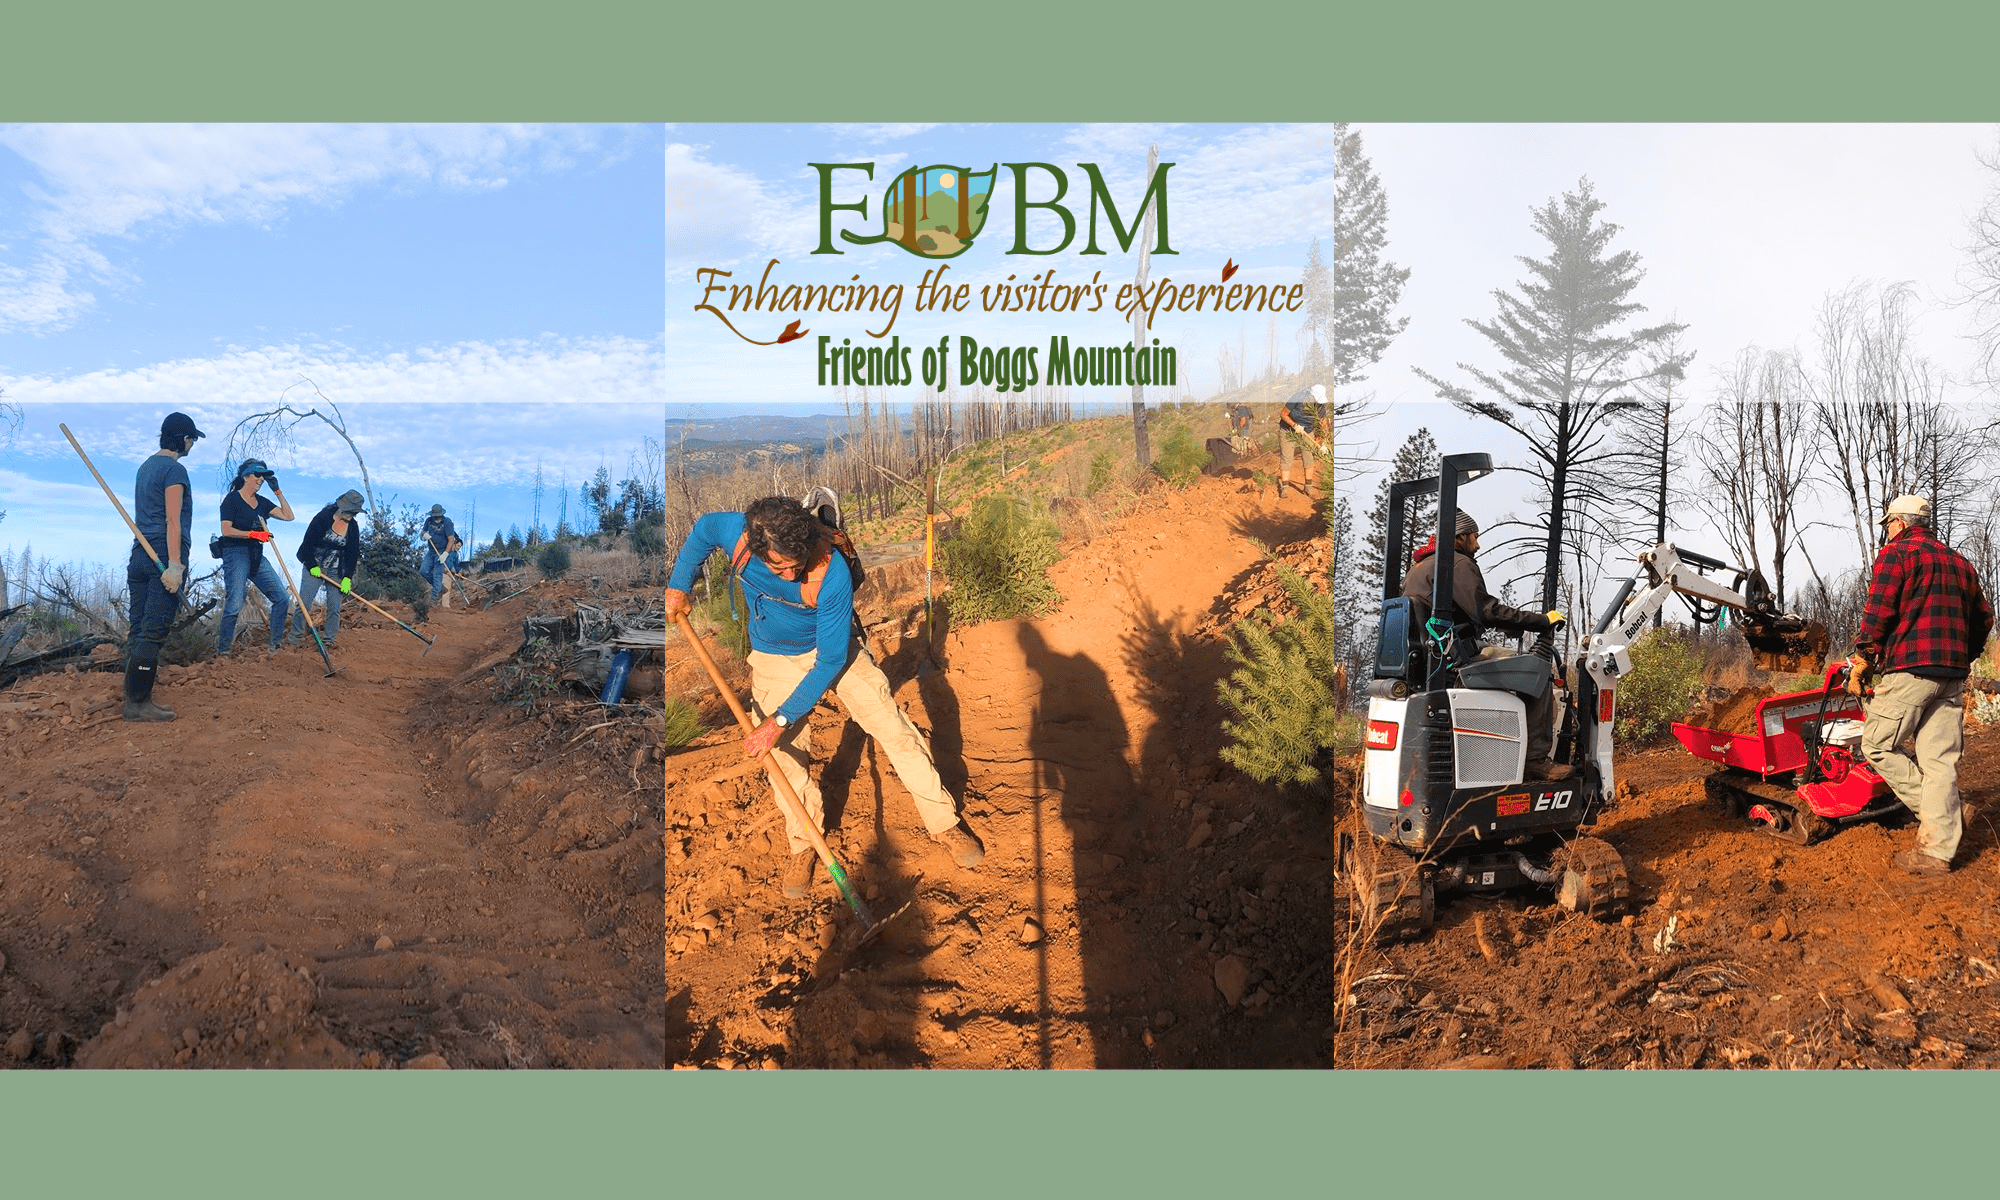 Friends of Boggs Mountain